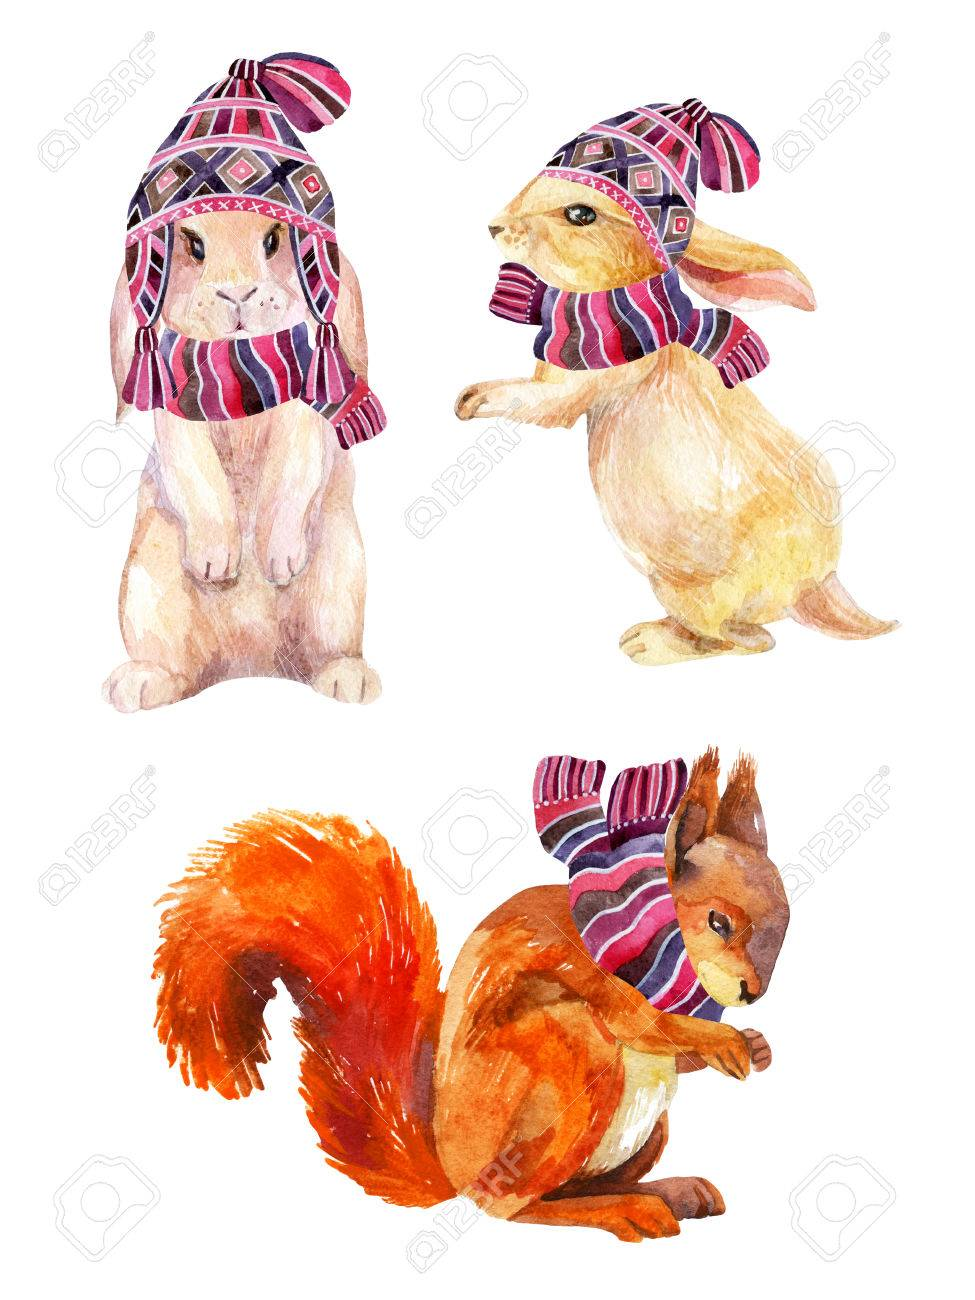 7190df97218 Rabbit and squirrel with winter hat and scarf. Cute bunny in cozy knitted  clothes.